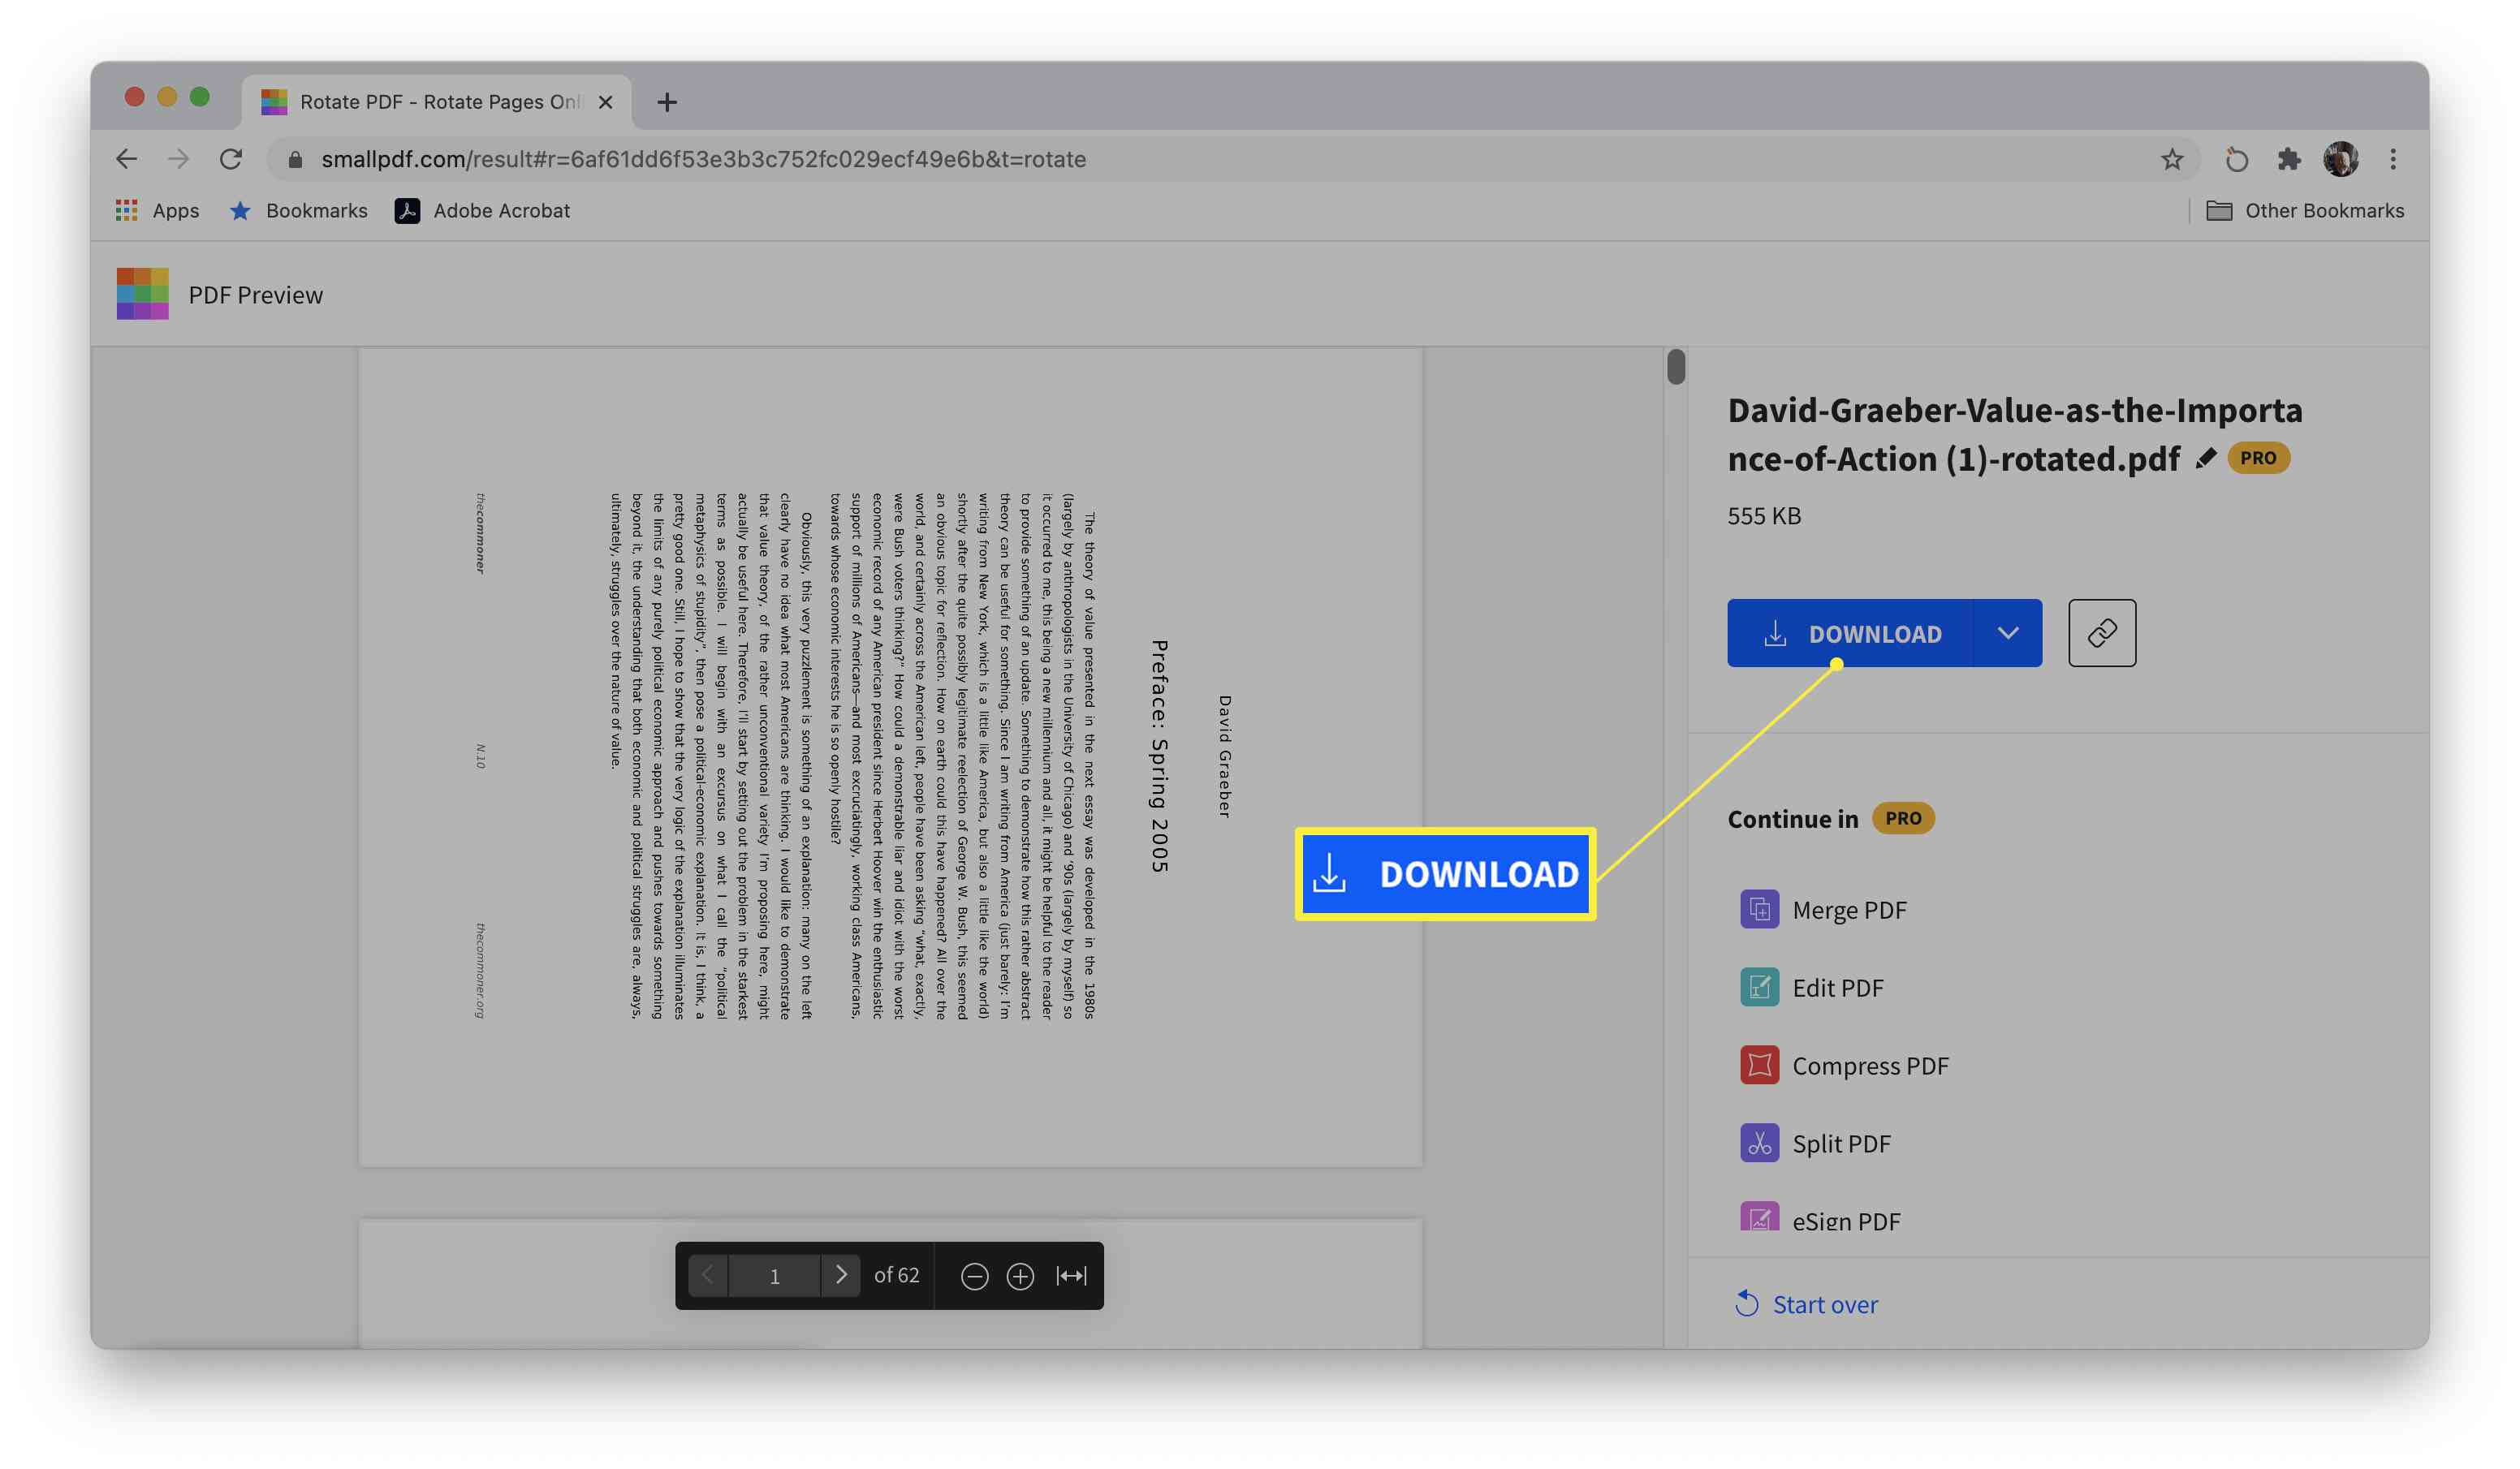 Smallpdf site with PDF document edited and download button highlighted